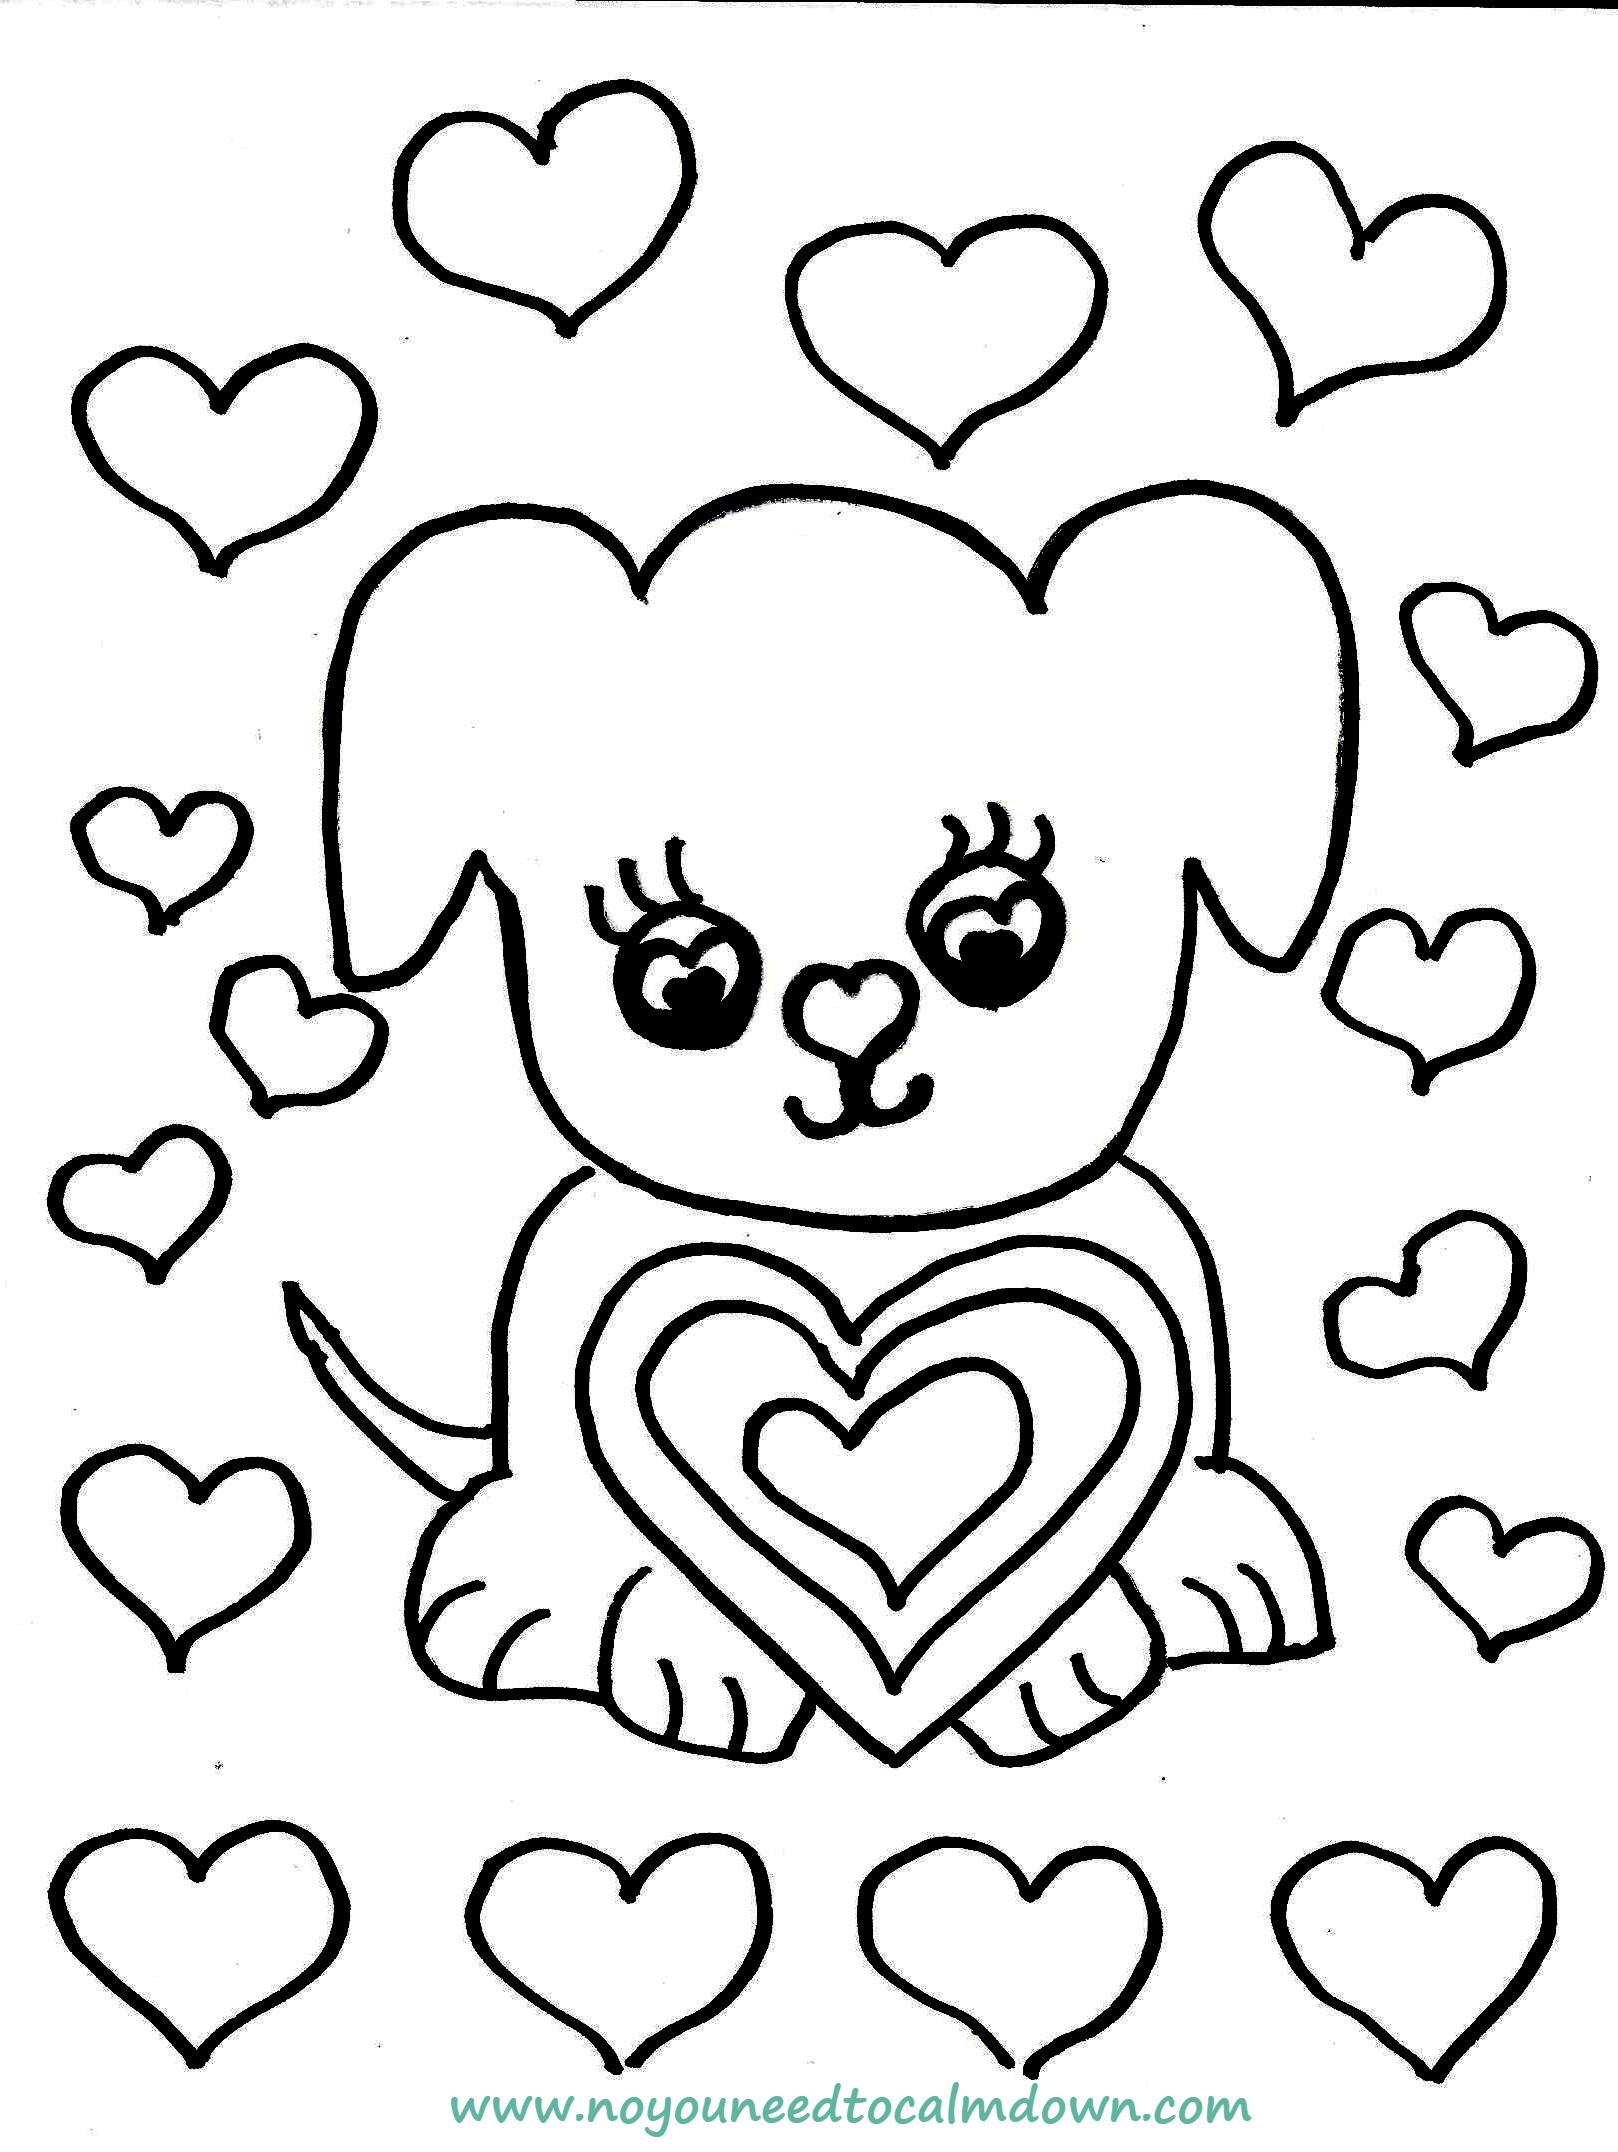 Best ideas about Calming Coloring Sheets For Kids . Save or Pin dog coloring page feature Now.